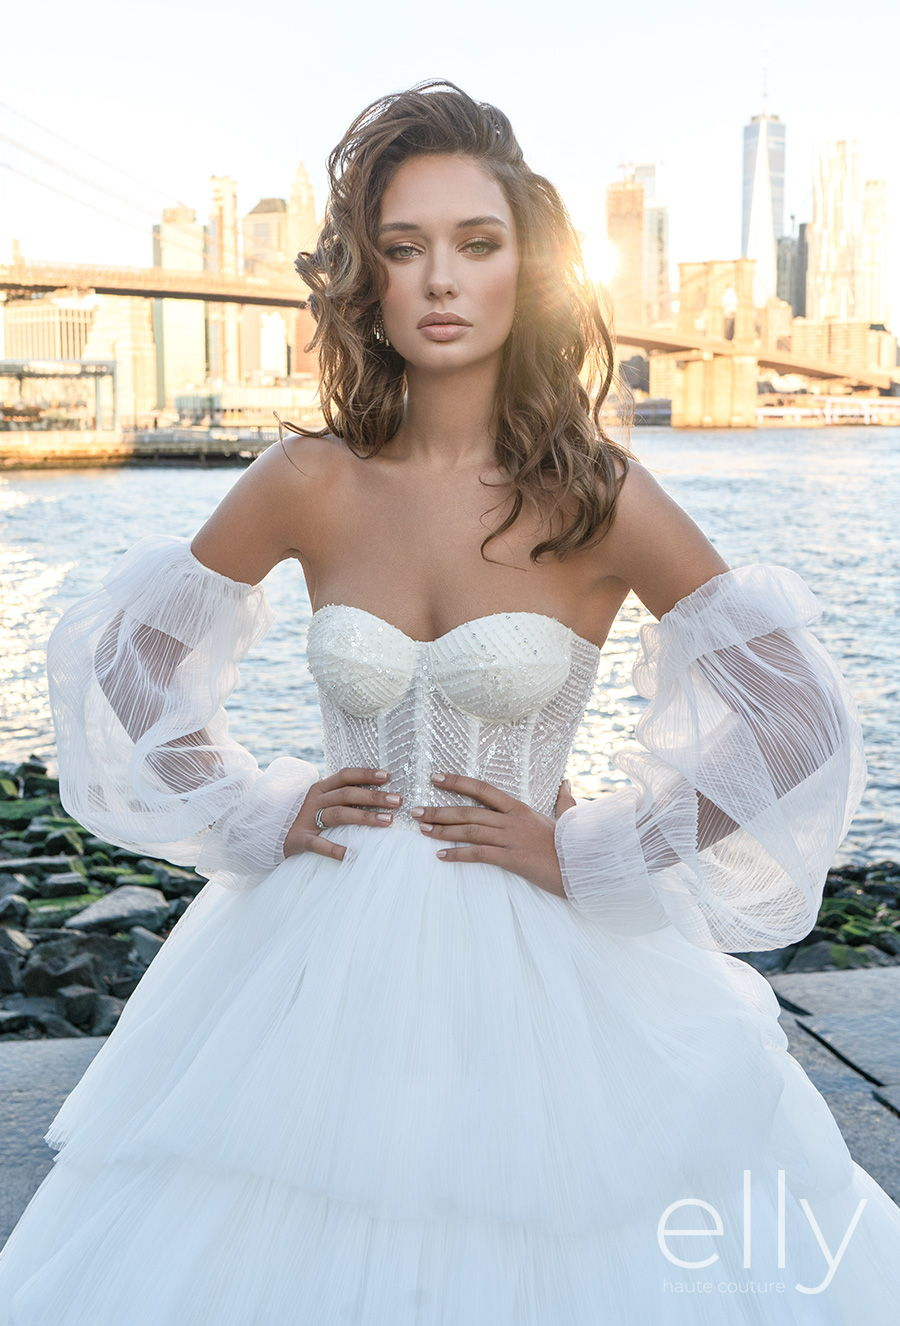 elly bride 2020 nyc bridal off the shoulder bishop sleeves sweetheart neckline heavily embellished bodice tiered skirt romantic a  line wedding dress mid back chapel train (adriana) zv mv